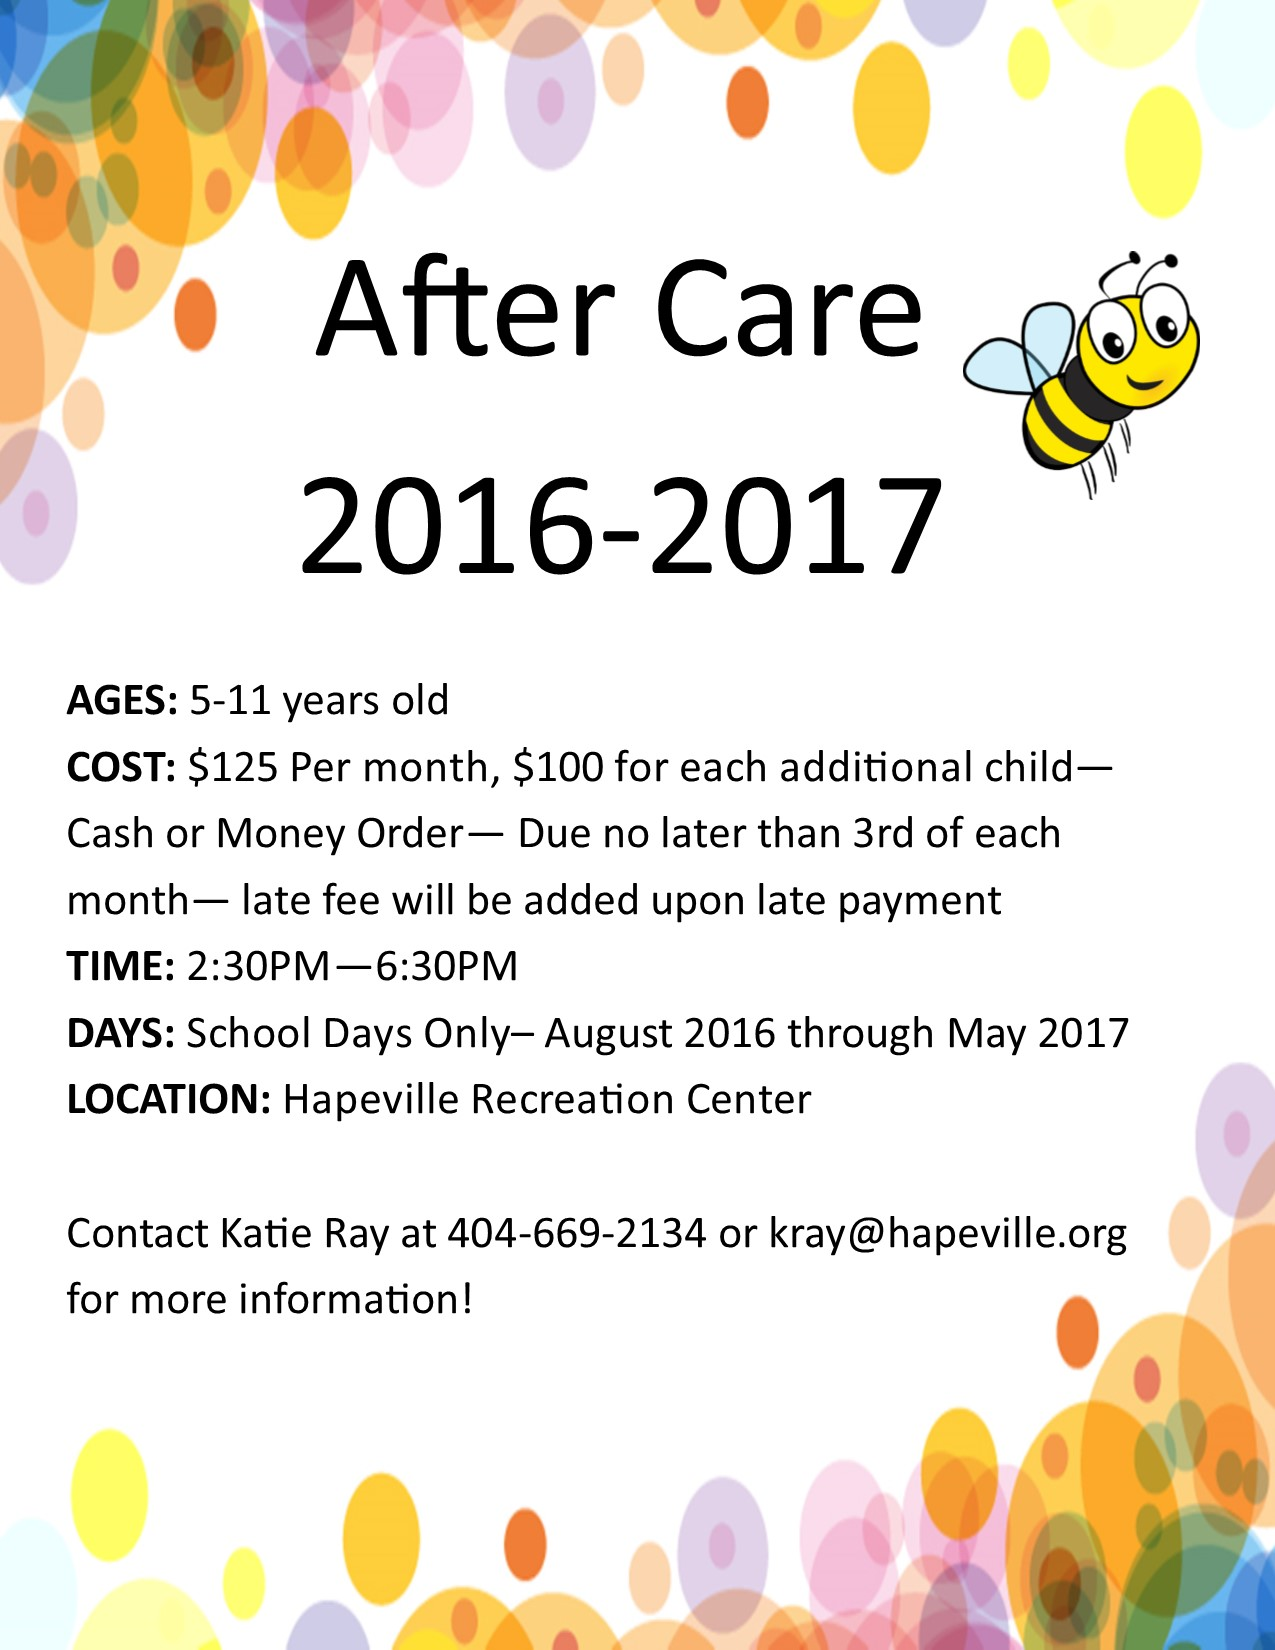 after-care flyer 2016-2017.jpg